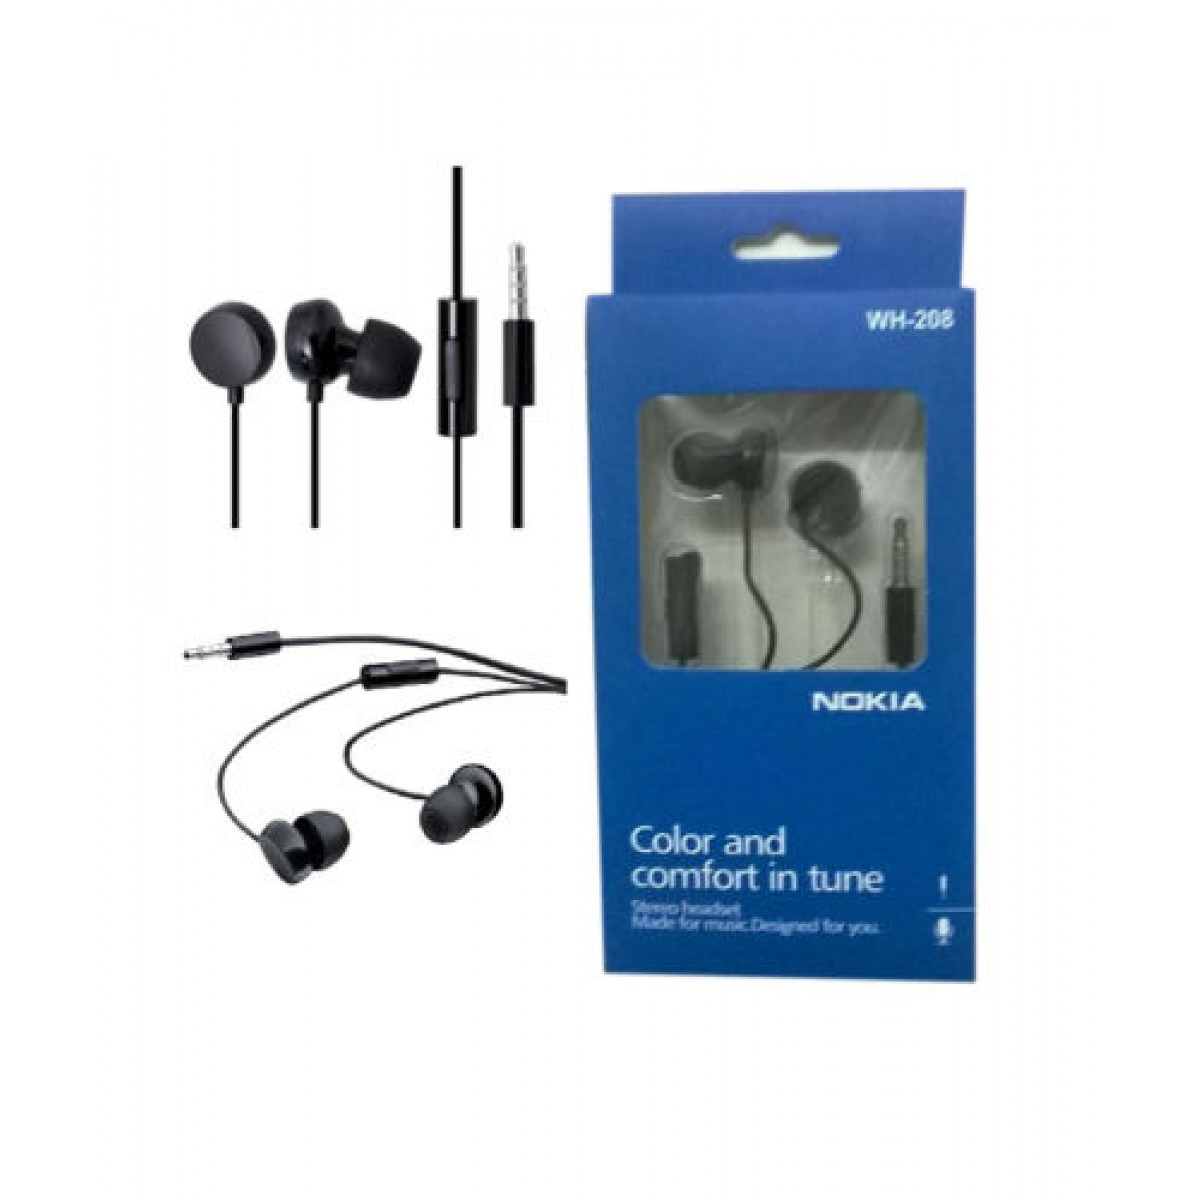 Alliance nokia wh 208 in the ear headset price Get